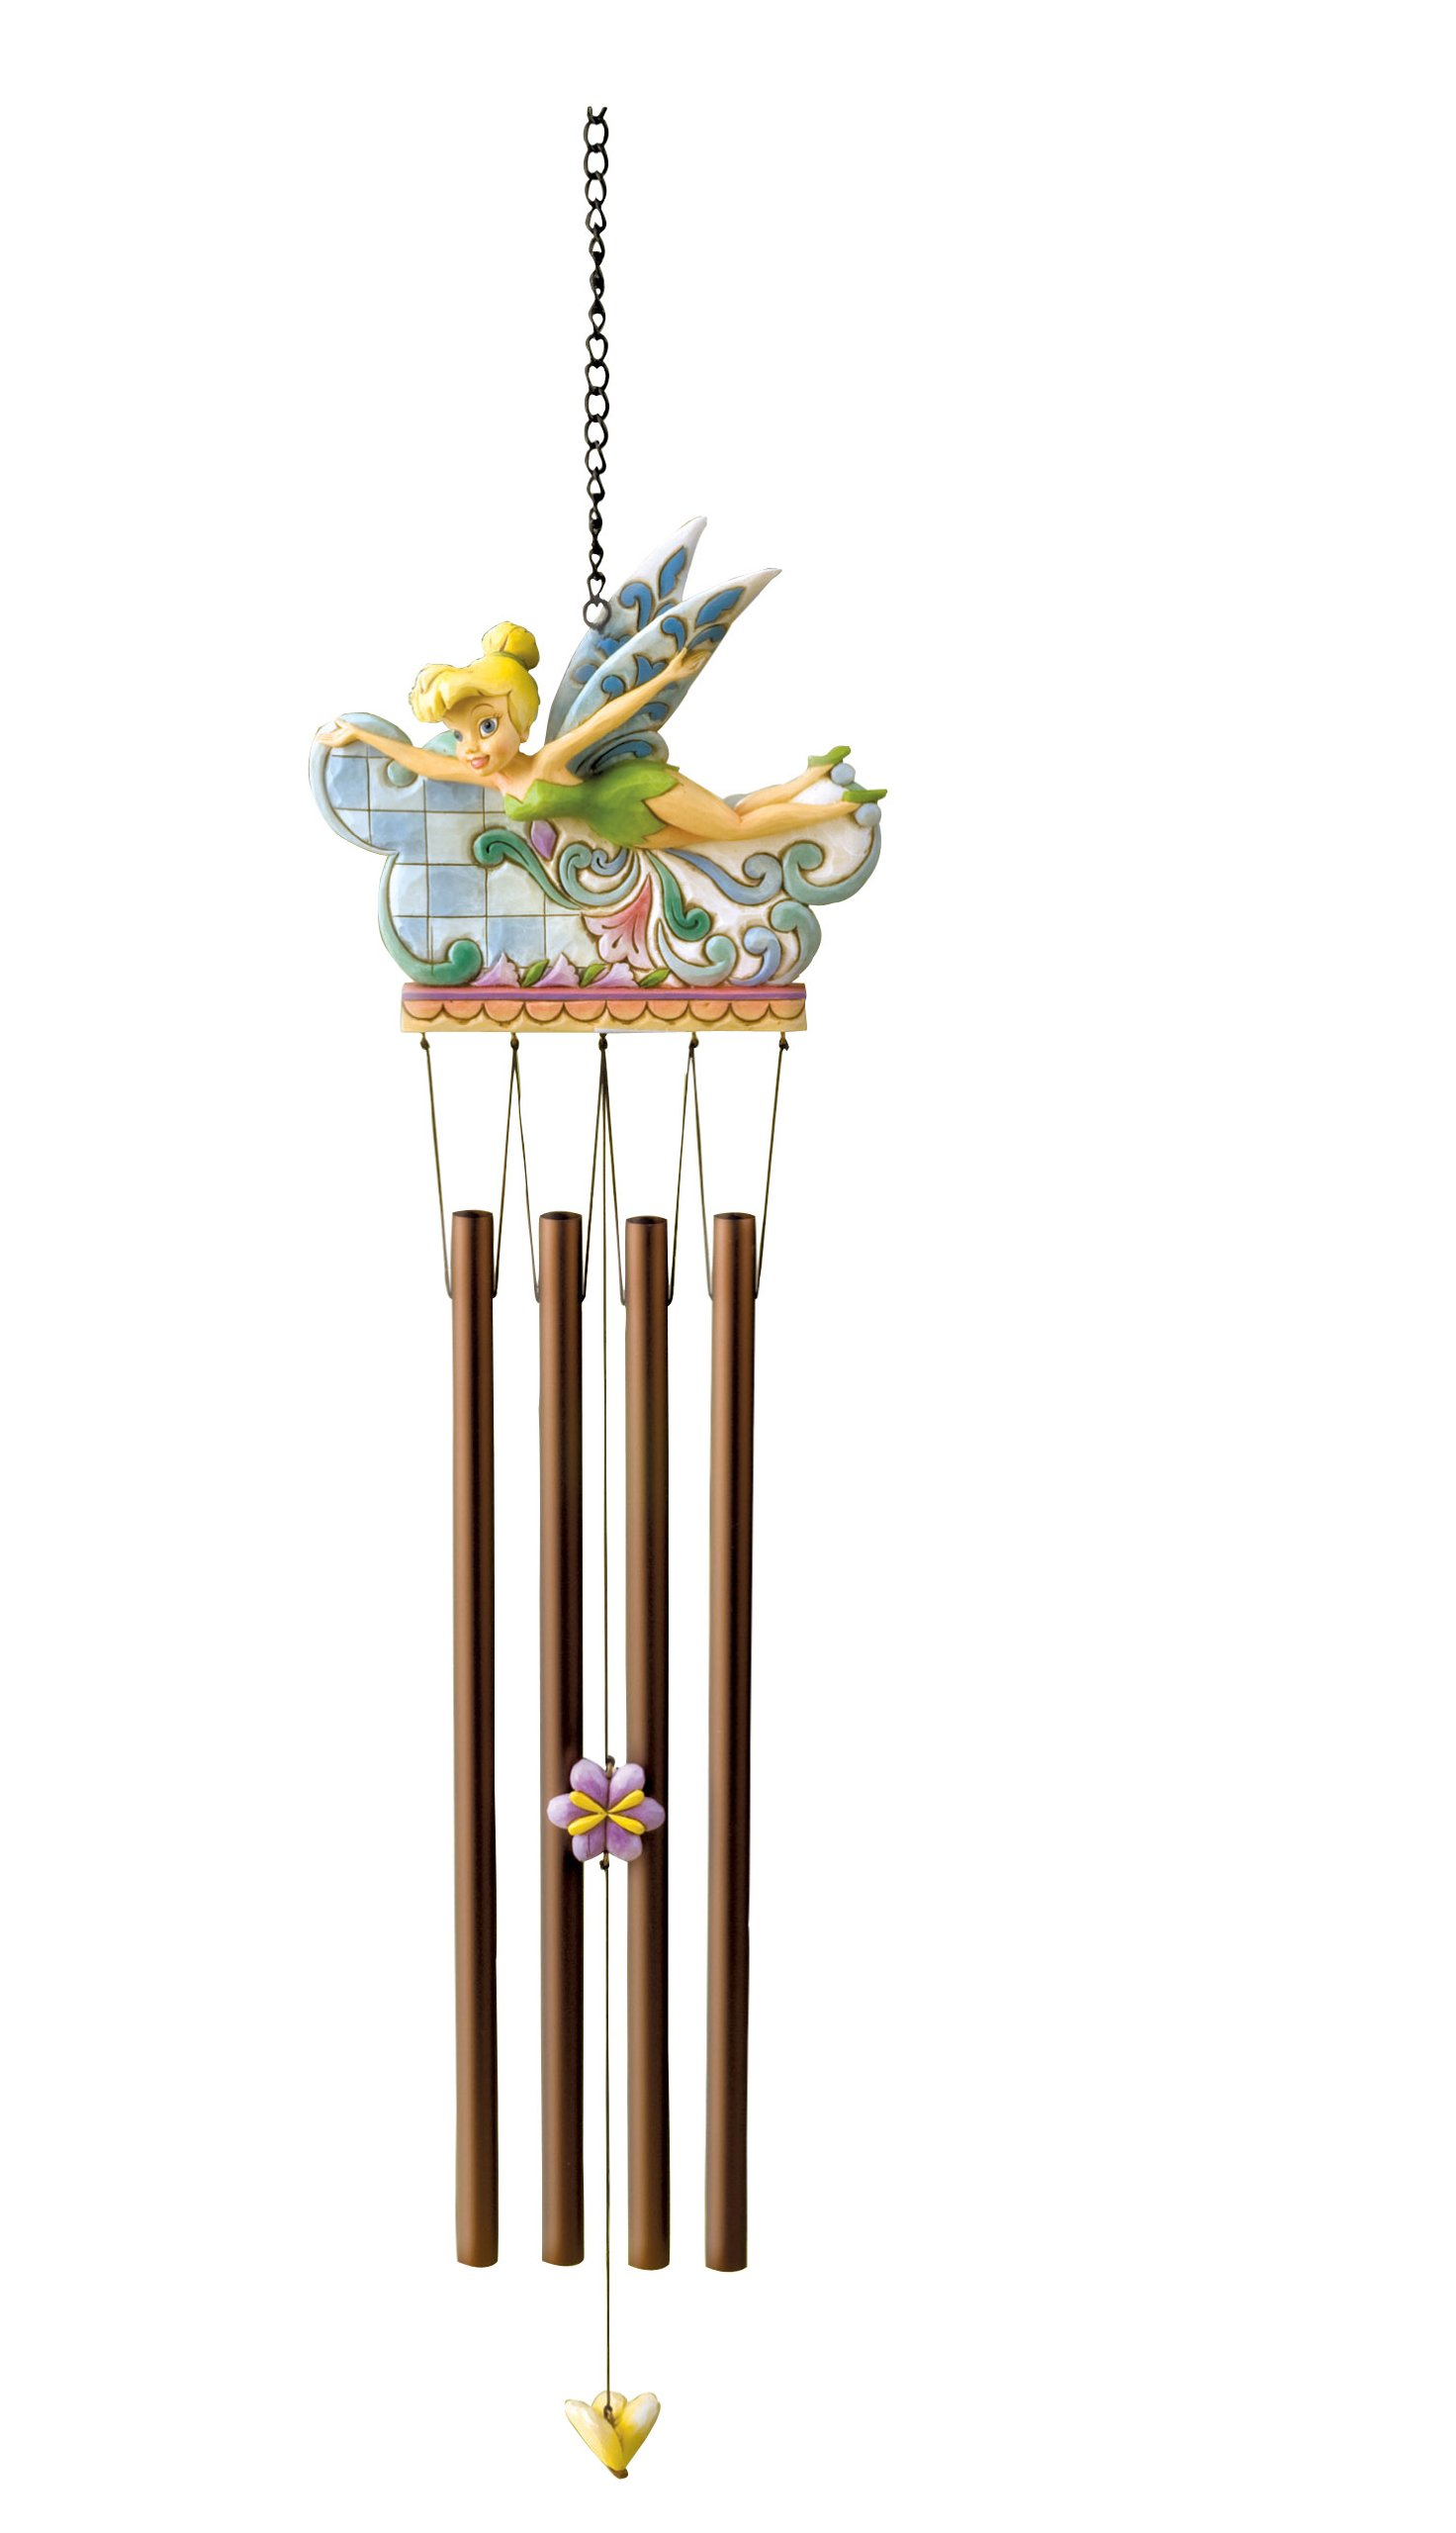 Disney Traditions by Jim Shore 4013259 Tinker Bell Garden Windchime 18-Inch